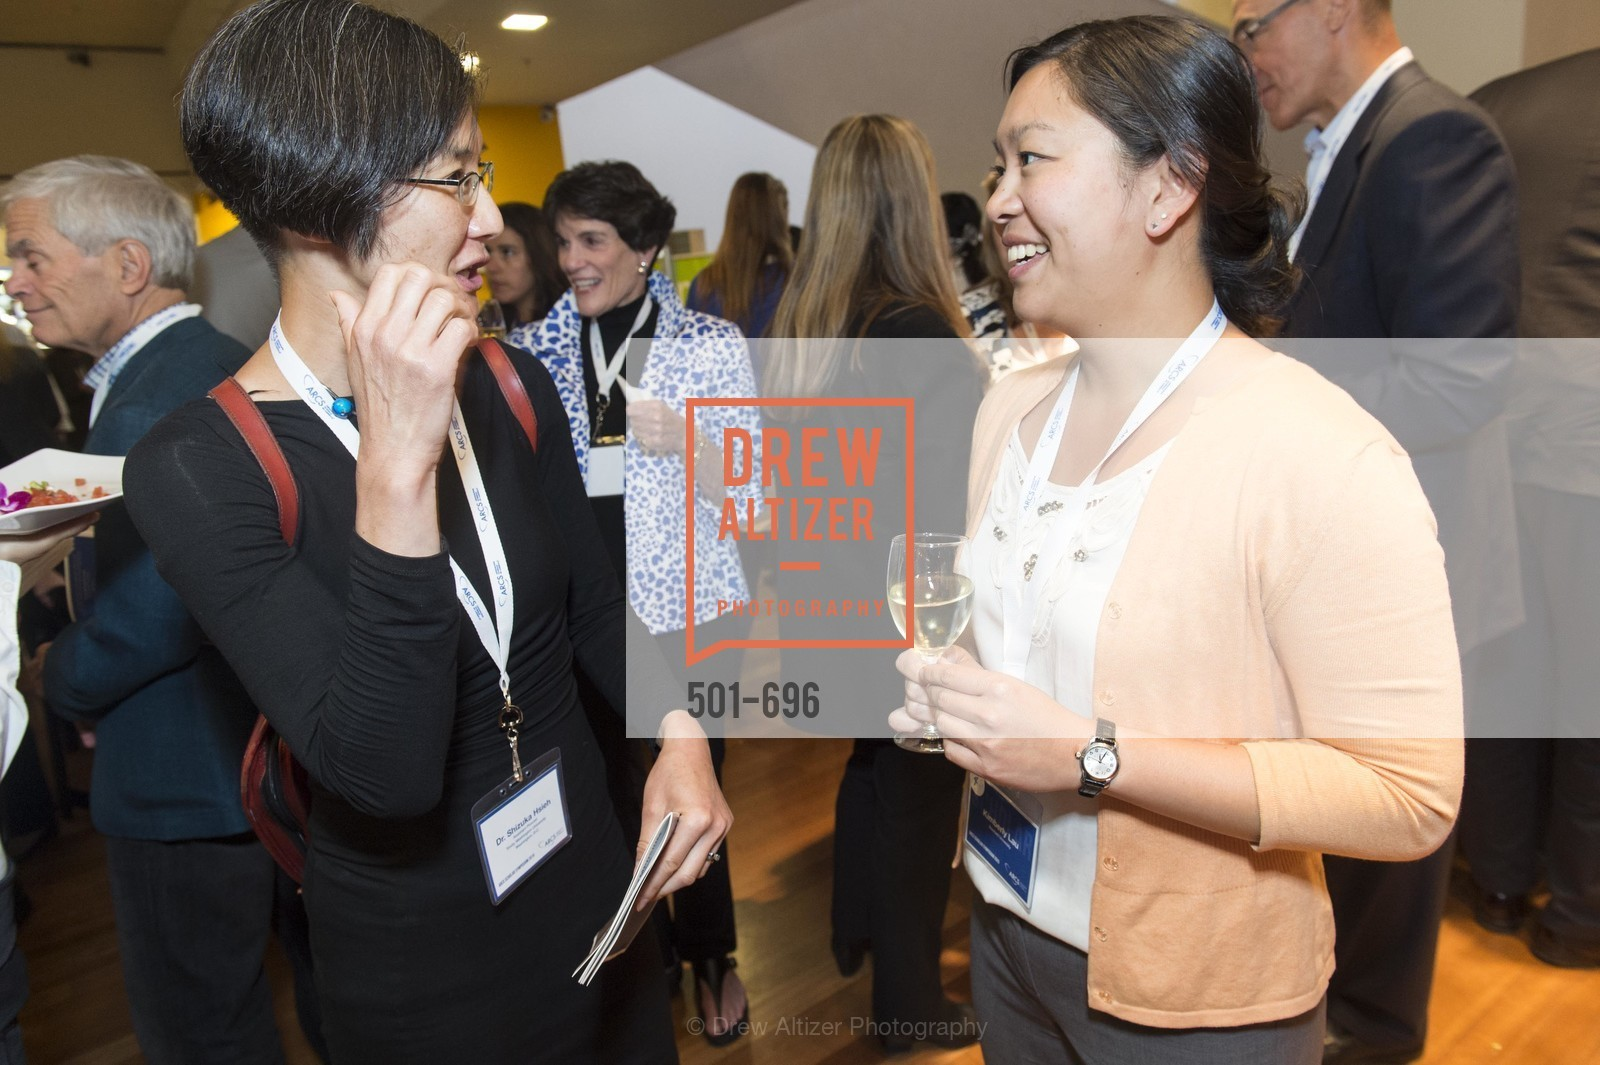 Shizuka Hsieh, Kimberly Lau, ARCS FOUNDATION Scholar Symposium, US, May 5th, 2015,Drew Altizer, Drew Altizer Photography, full-service agency, private events, San Francisco photographer, photographer california